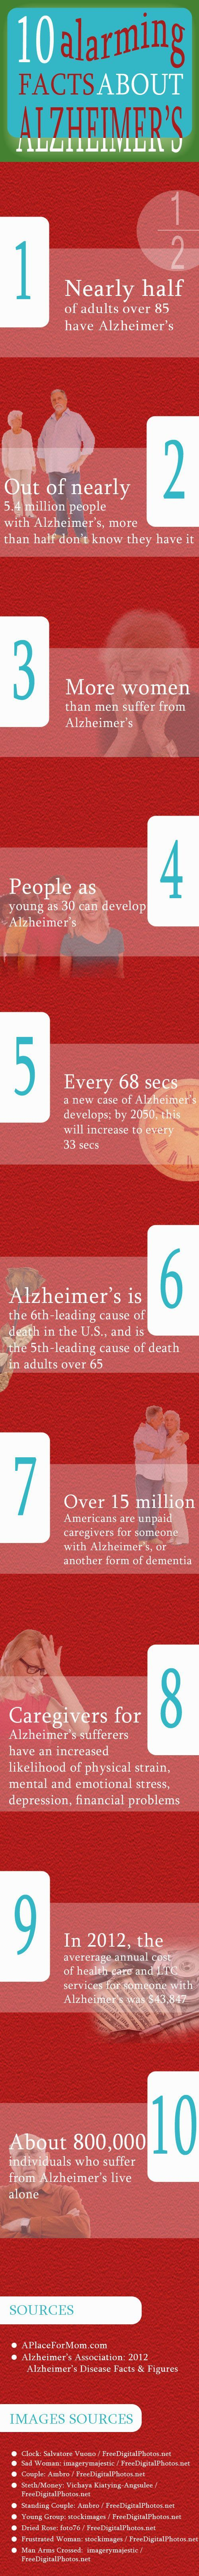 Facts about Alzheimer's.